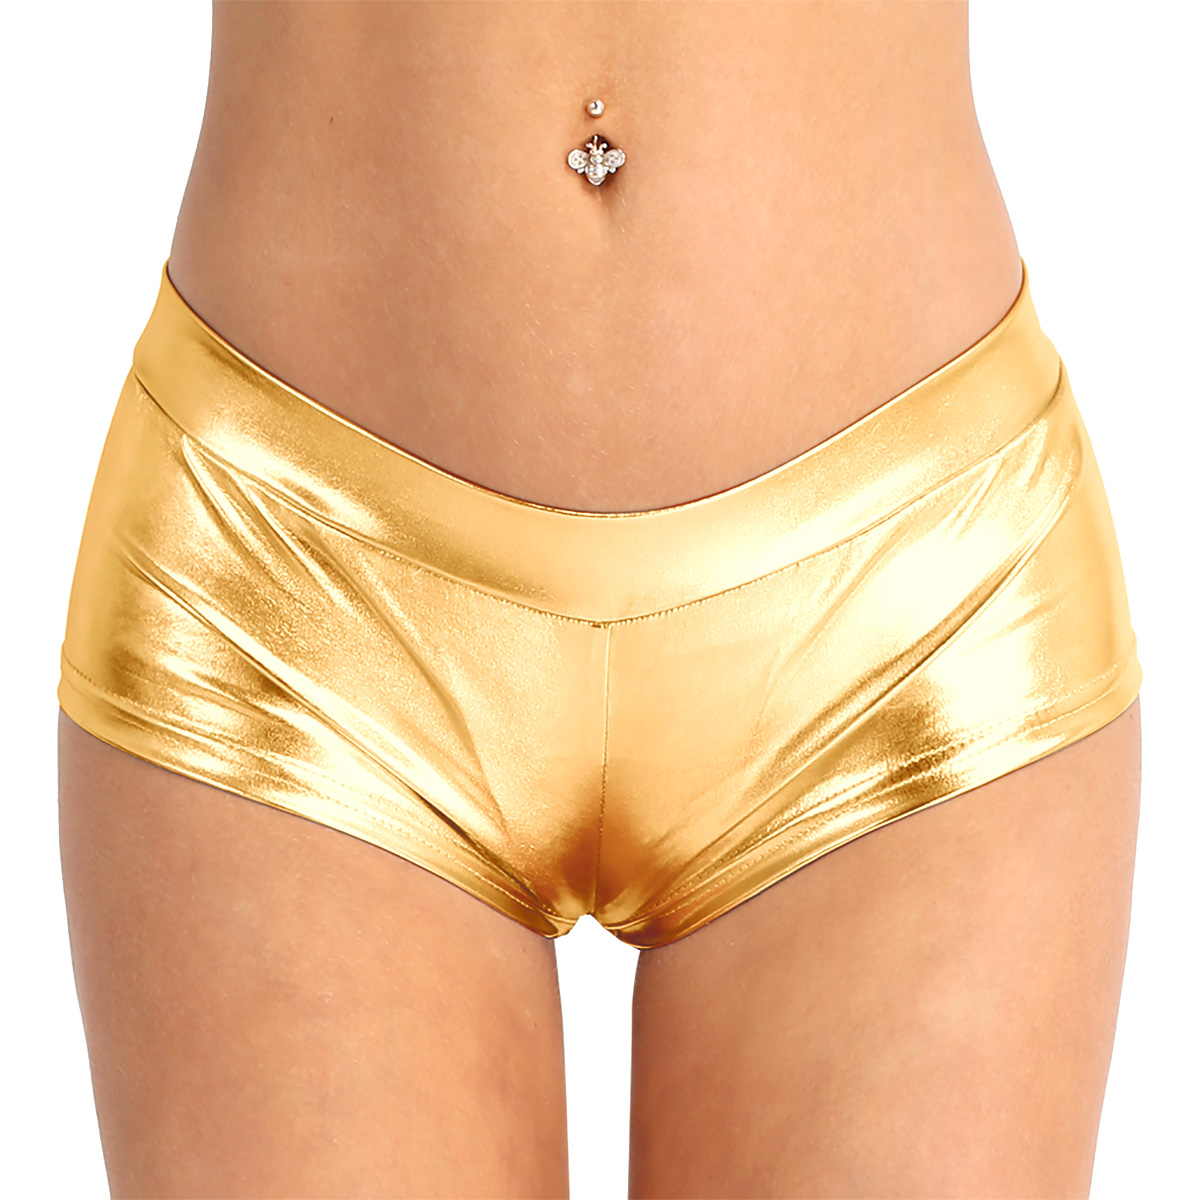 Women's Pole Dance Shorts Rave Clothes Shiny Faux Leather Low Waist Hot <font><b>Sexy</b></font> Shorts Pants for Dancing Raves <font><b>Festivals</b></font> Costumes image